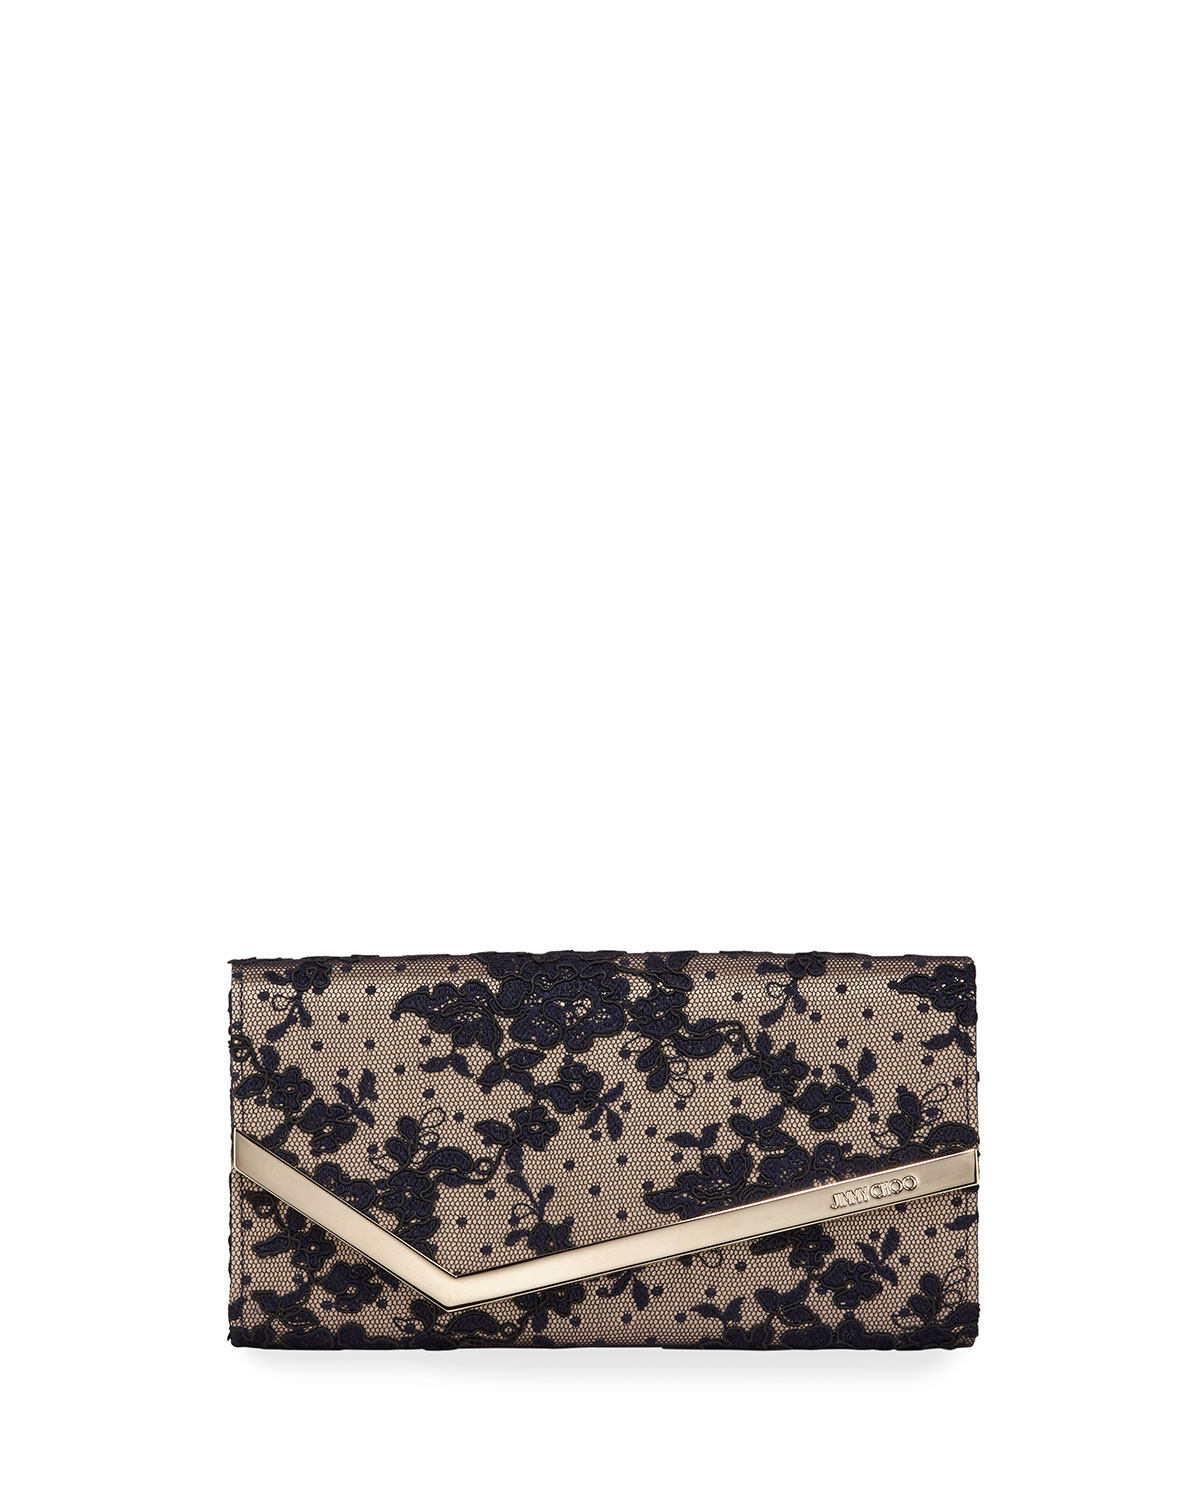 Jimmy Choo Tops EMMIE FLORAL LACE CLUTCH BAG